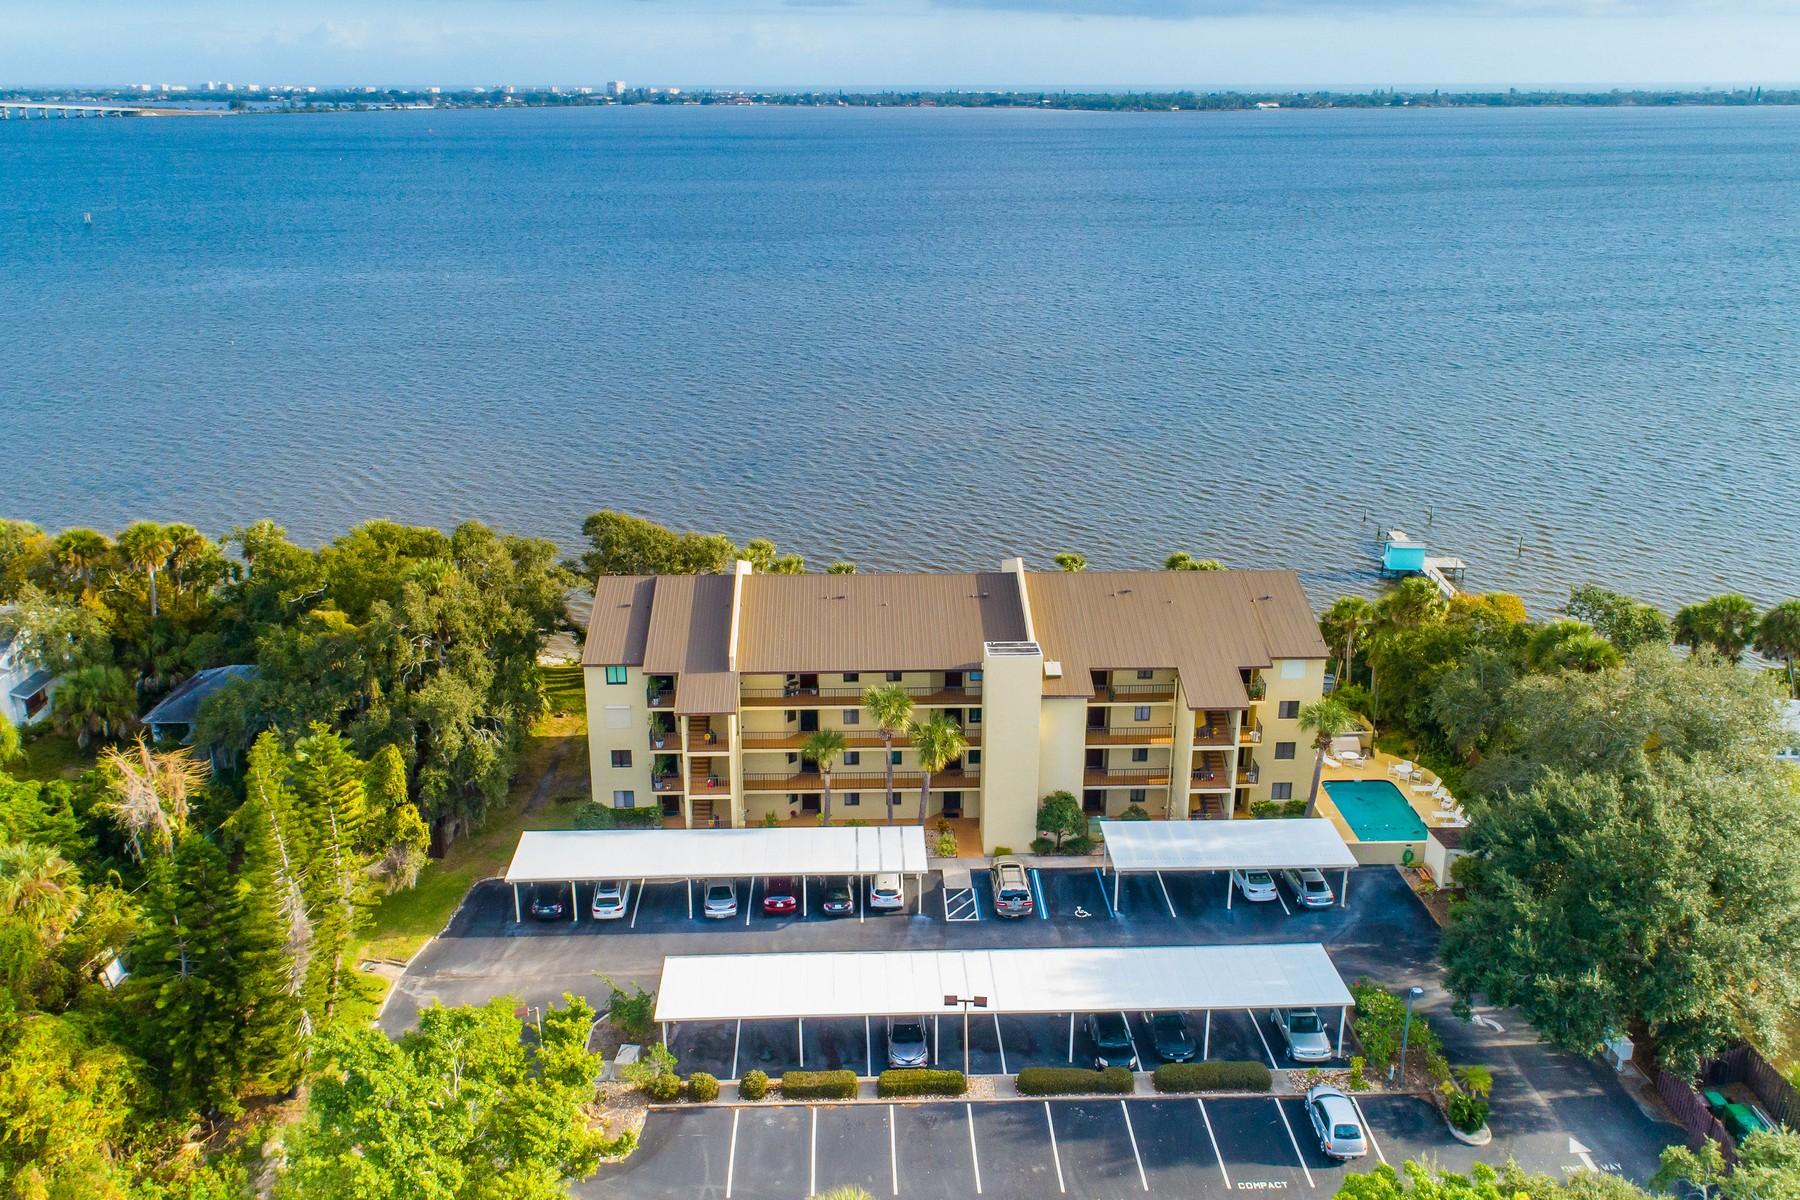 Condominium for Sale at 1480 Roosevelt Ave 1480 Roosevelt Ave #304 Melbourne, Florida 32901 United States